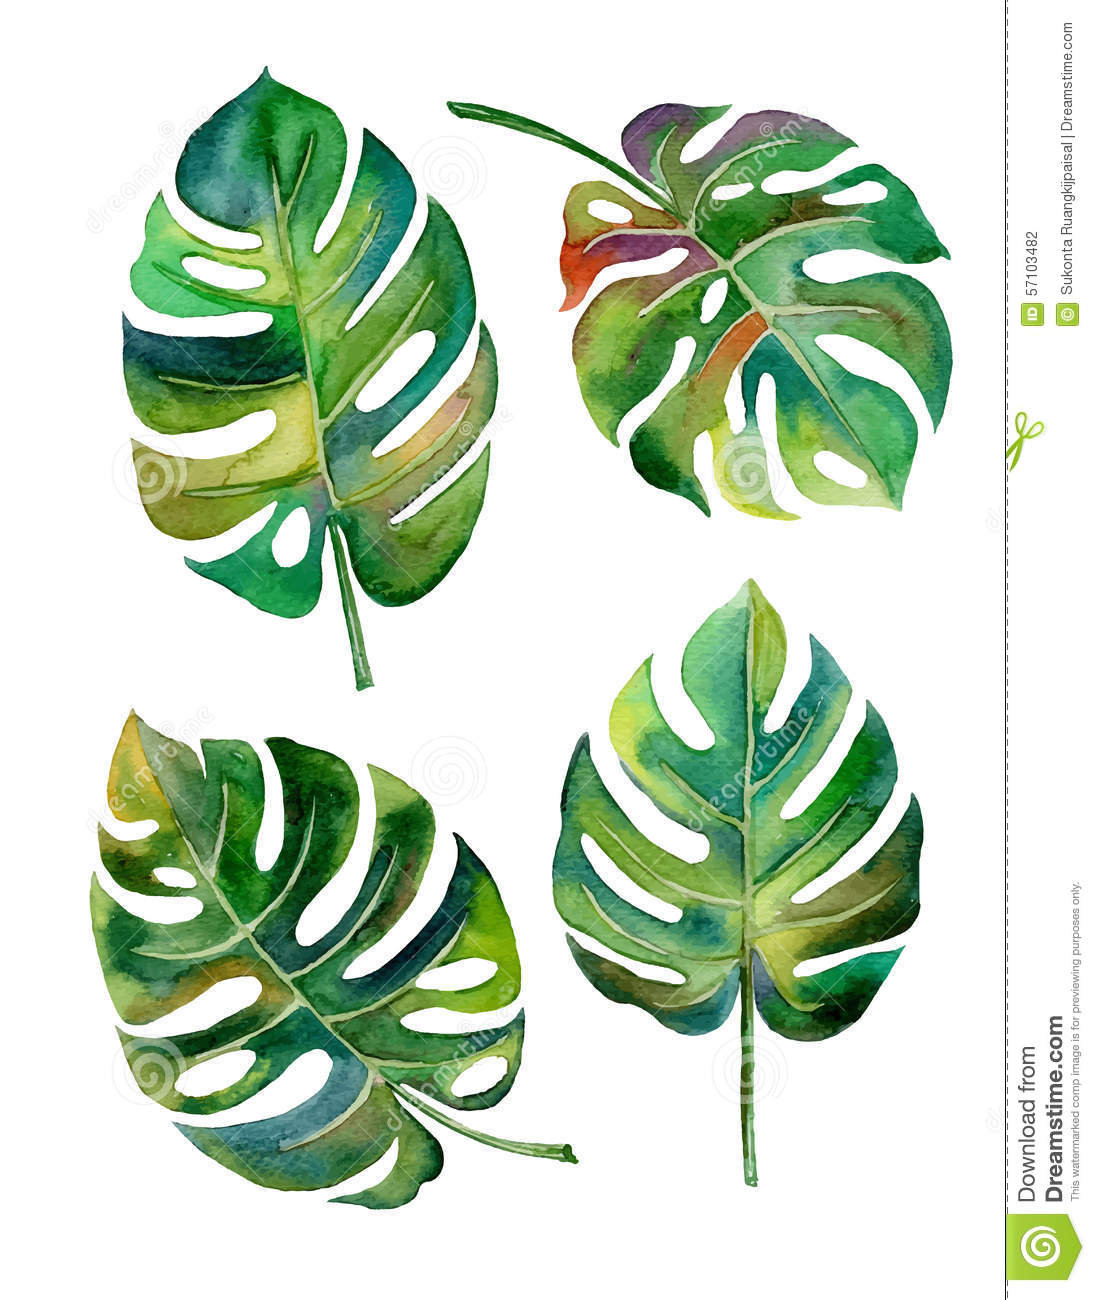 aquarelle fendue de philodendron de feuille sur le vecteur blanc de fond photo stock image. Black Bedroom Furniture Sets. Home Design Ideas